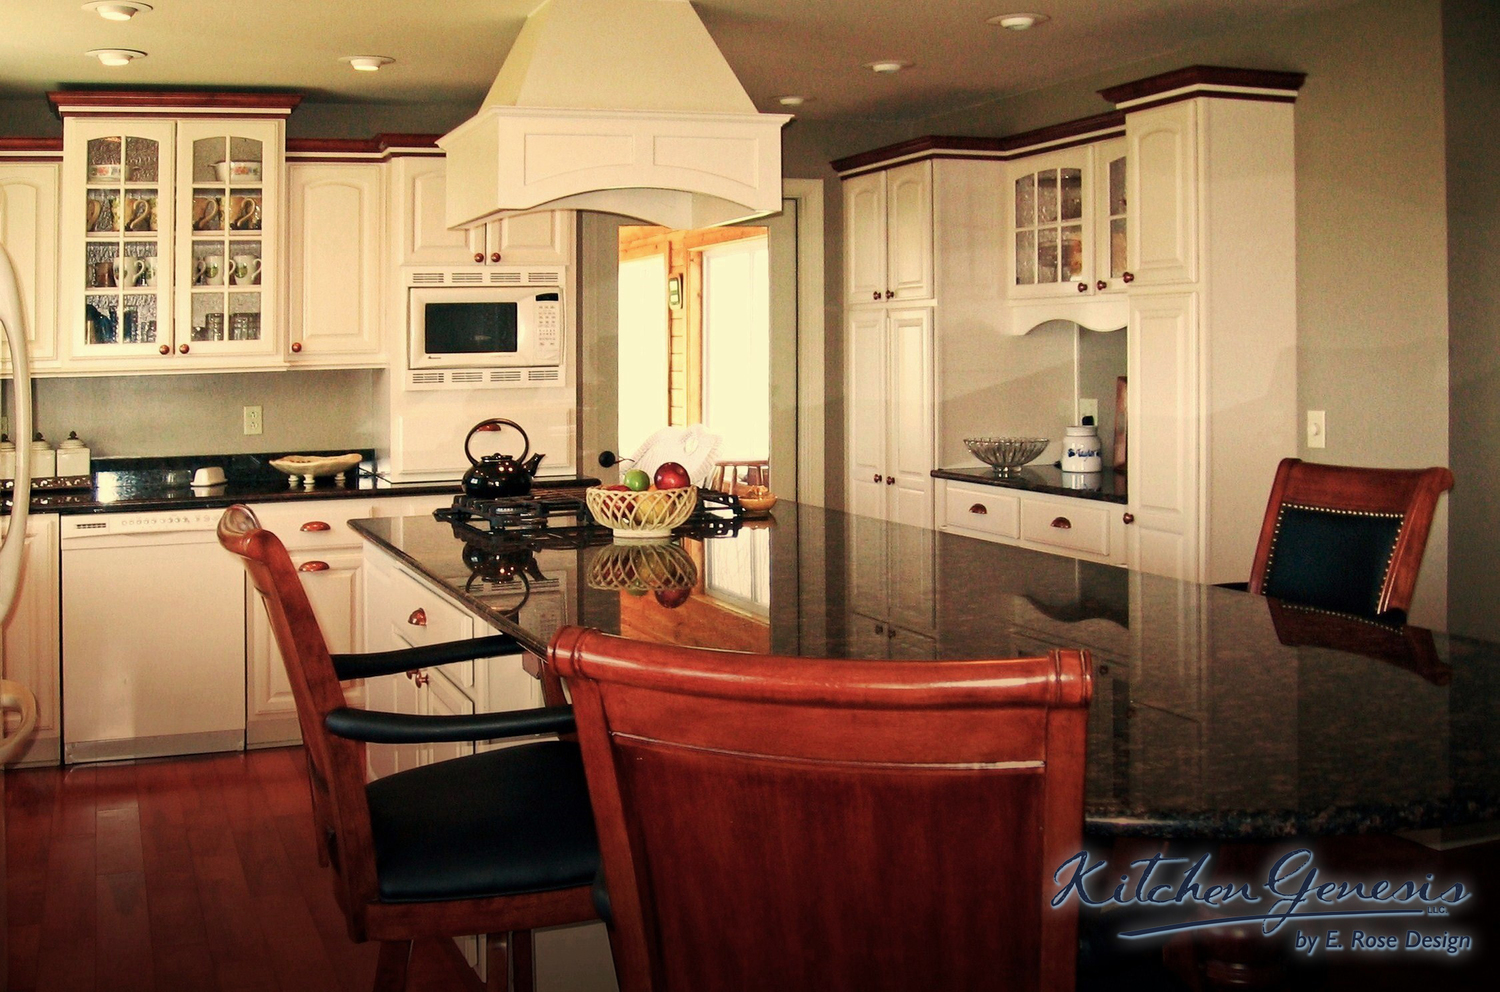 Cozy Country Kitchen Makeover — Kitchen Genesis by E. Rose Design